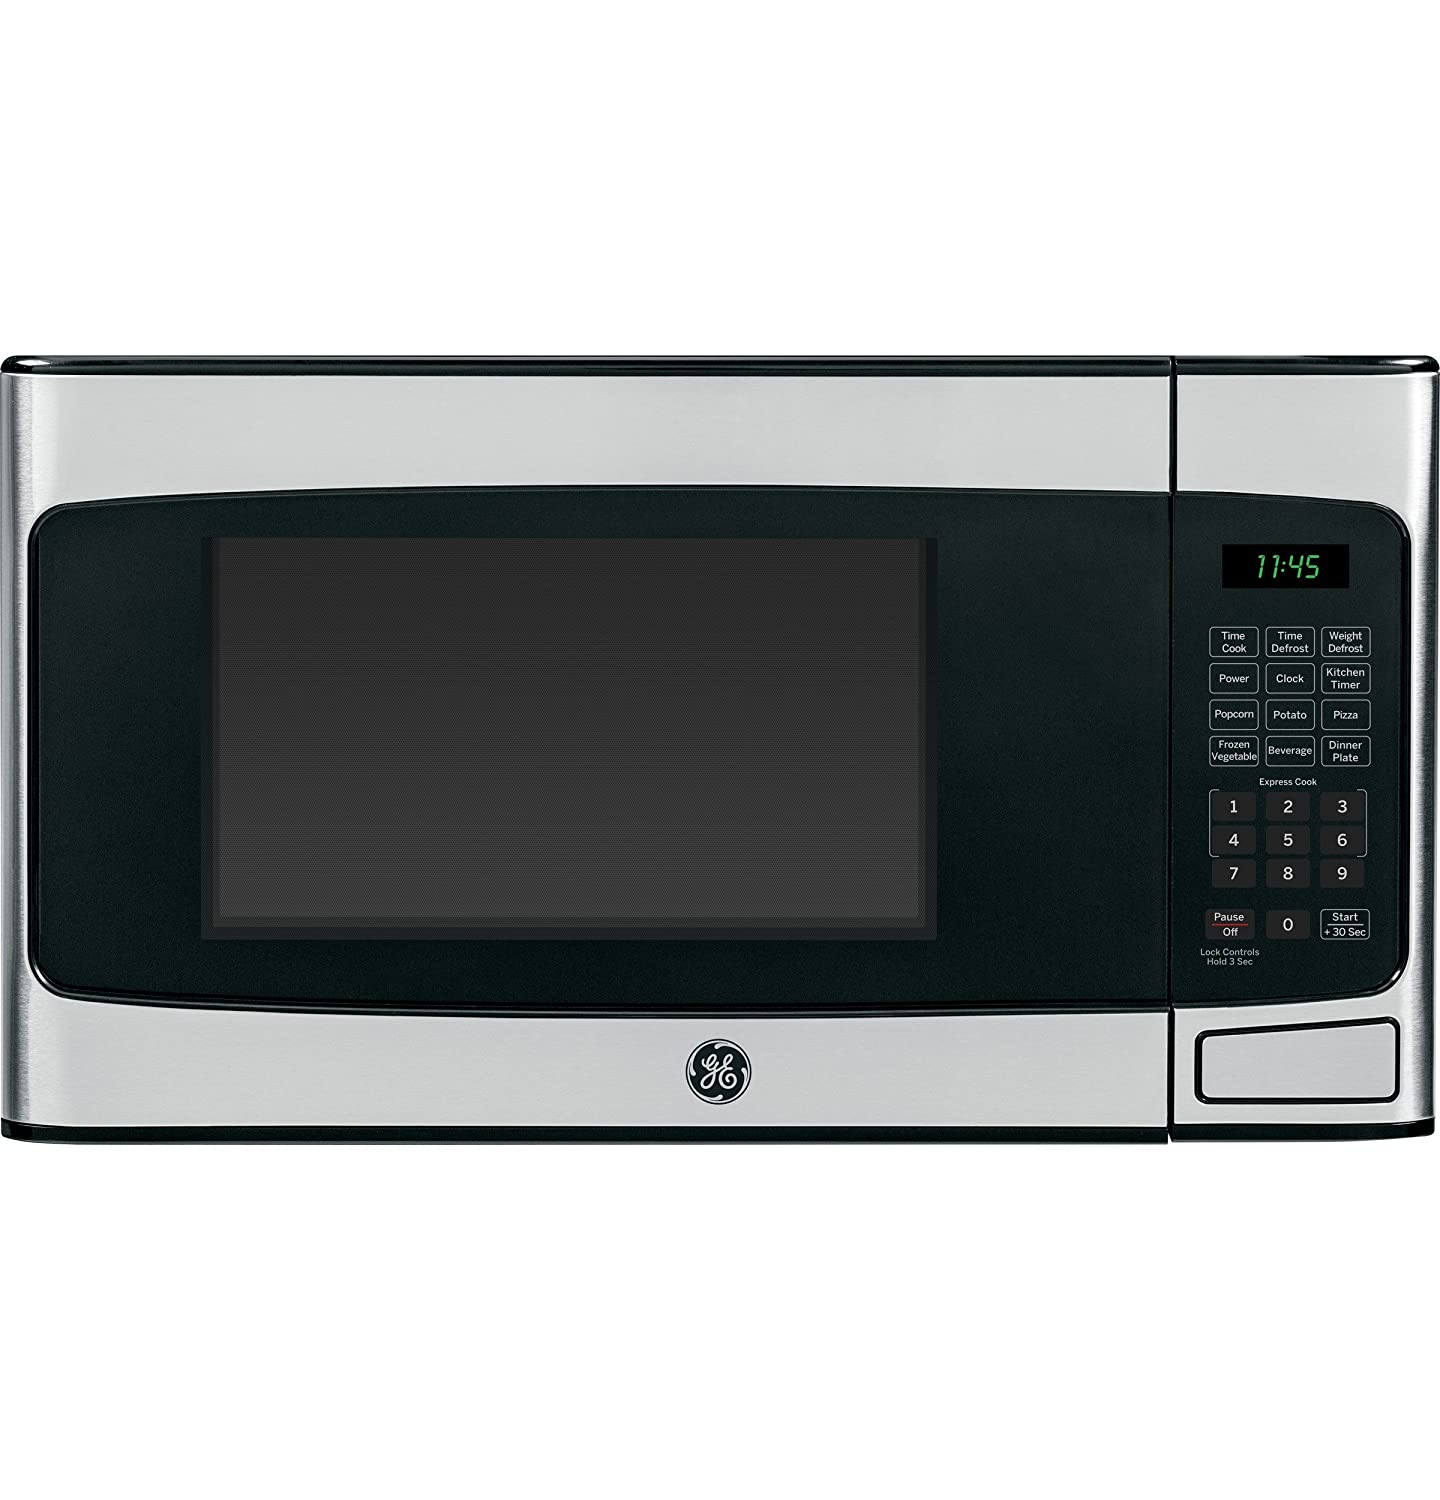 GE JES1145SHSS 1.1 Cu. Ft. Capacity Countertop Microwave Oven